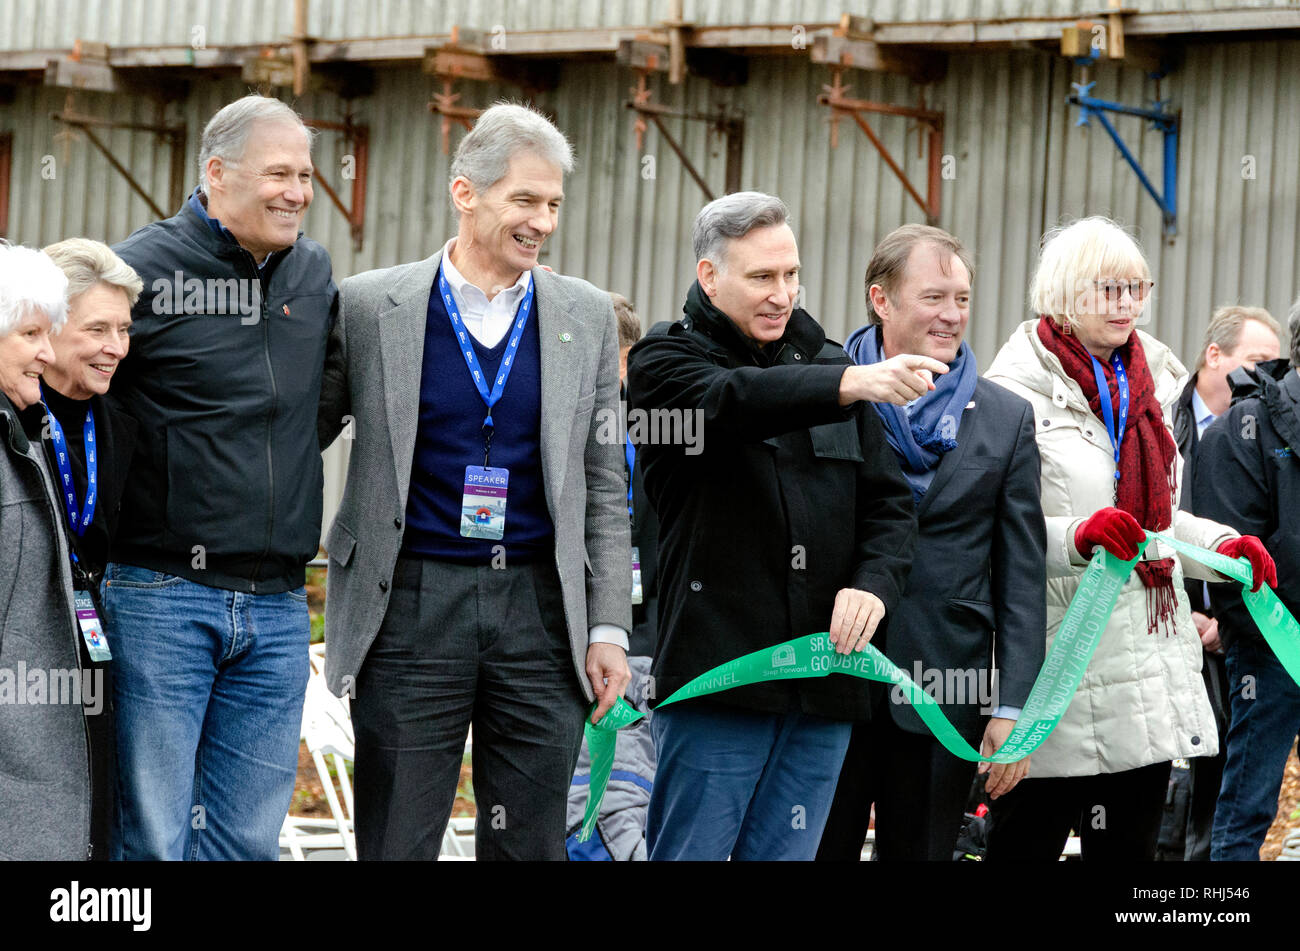 Washington, USA. 2nd Feb 2019. Washington State Governor, Jay Inslee (left) leads the ribbon cutting ceremony to formally open the new SR99 tunnel in Seattle, Washington ouside the tunnel upper deck entrance. The 2-mile long tunnel which took seven years to complete after overcoming difficulties during the tunnel drive, will open to traffic following celebrations to honor it's ultimate success. Credit: Catherine Bassetti/Alamy Live News - Stock Image